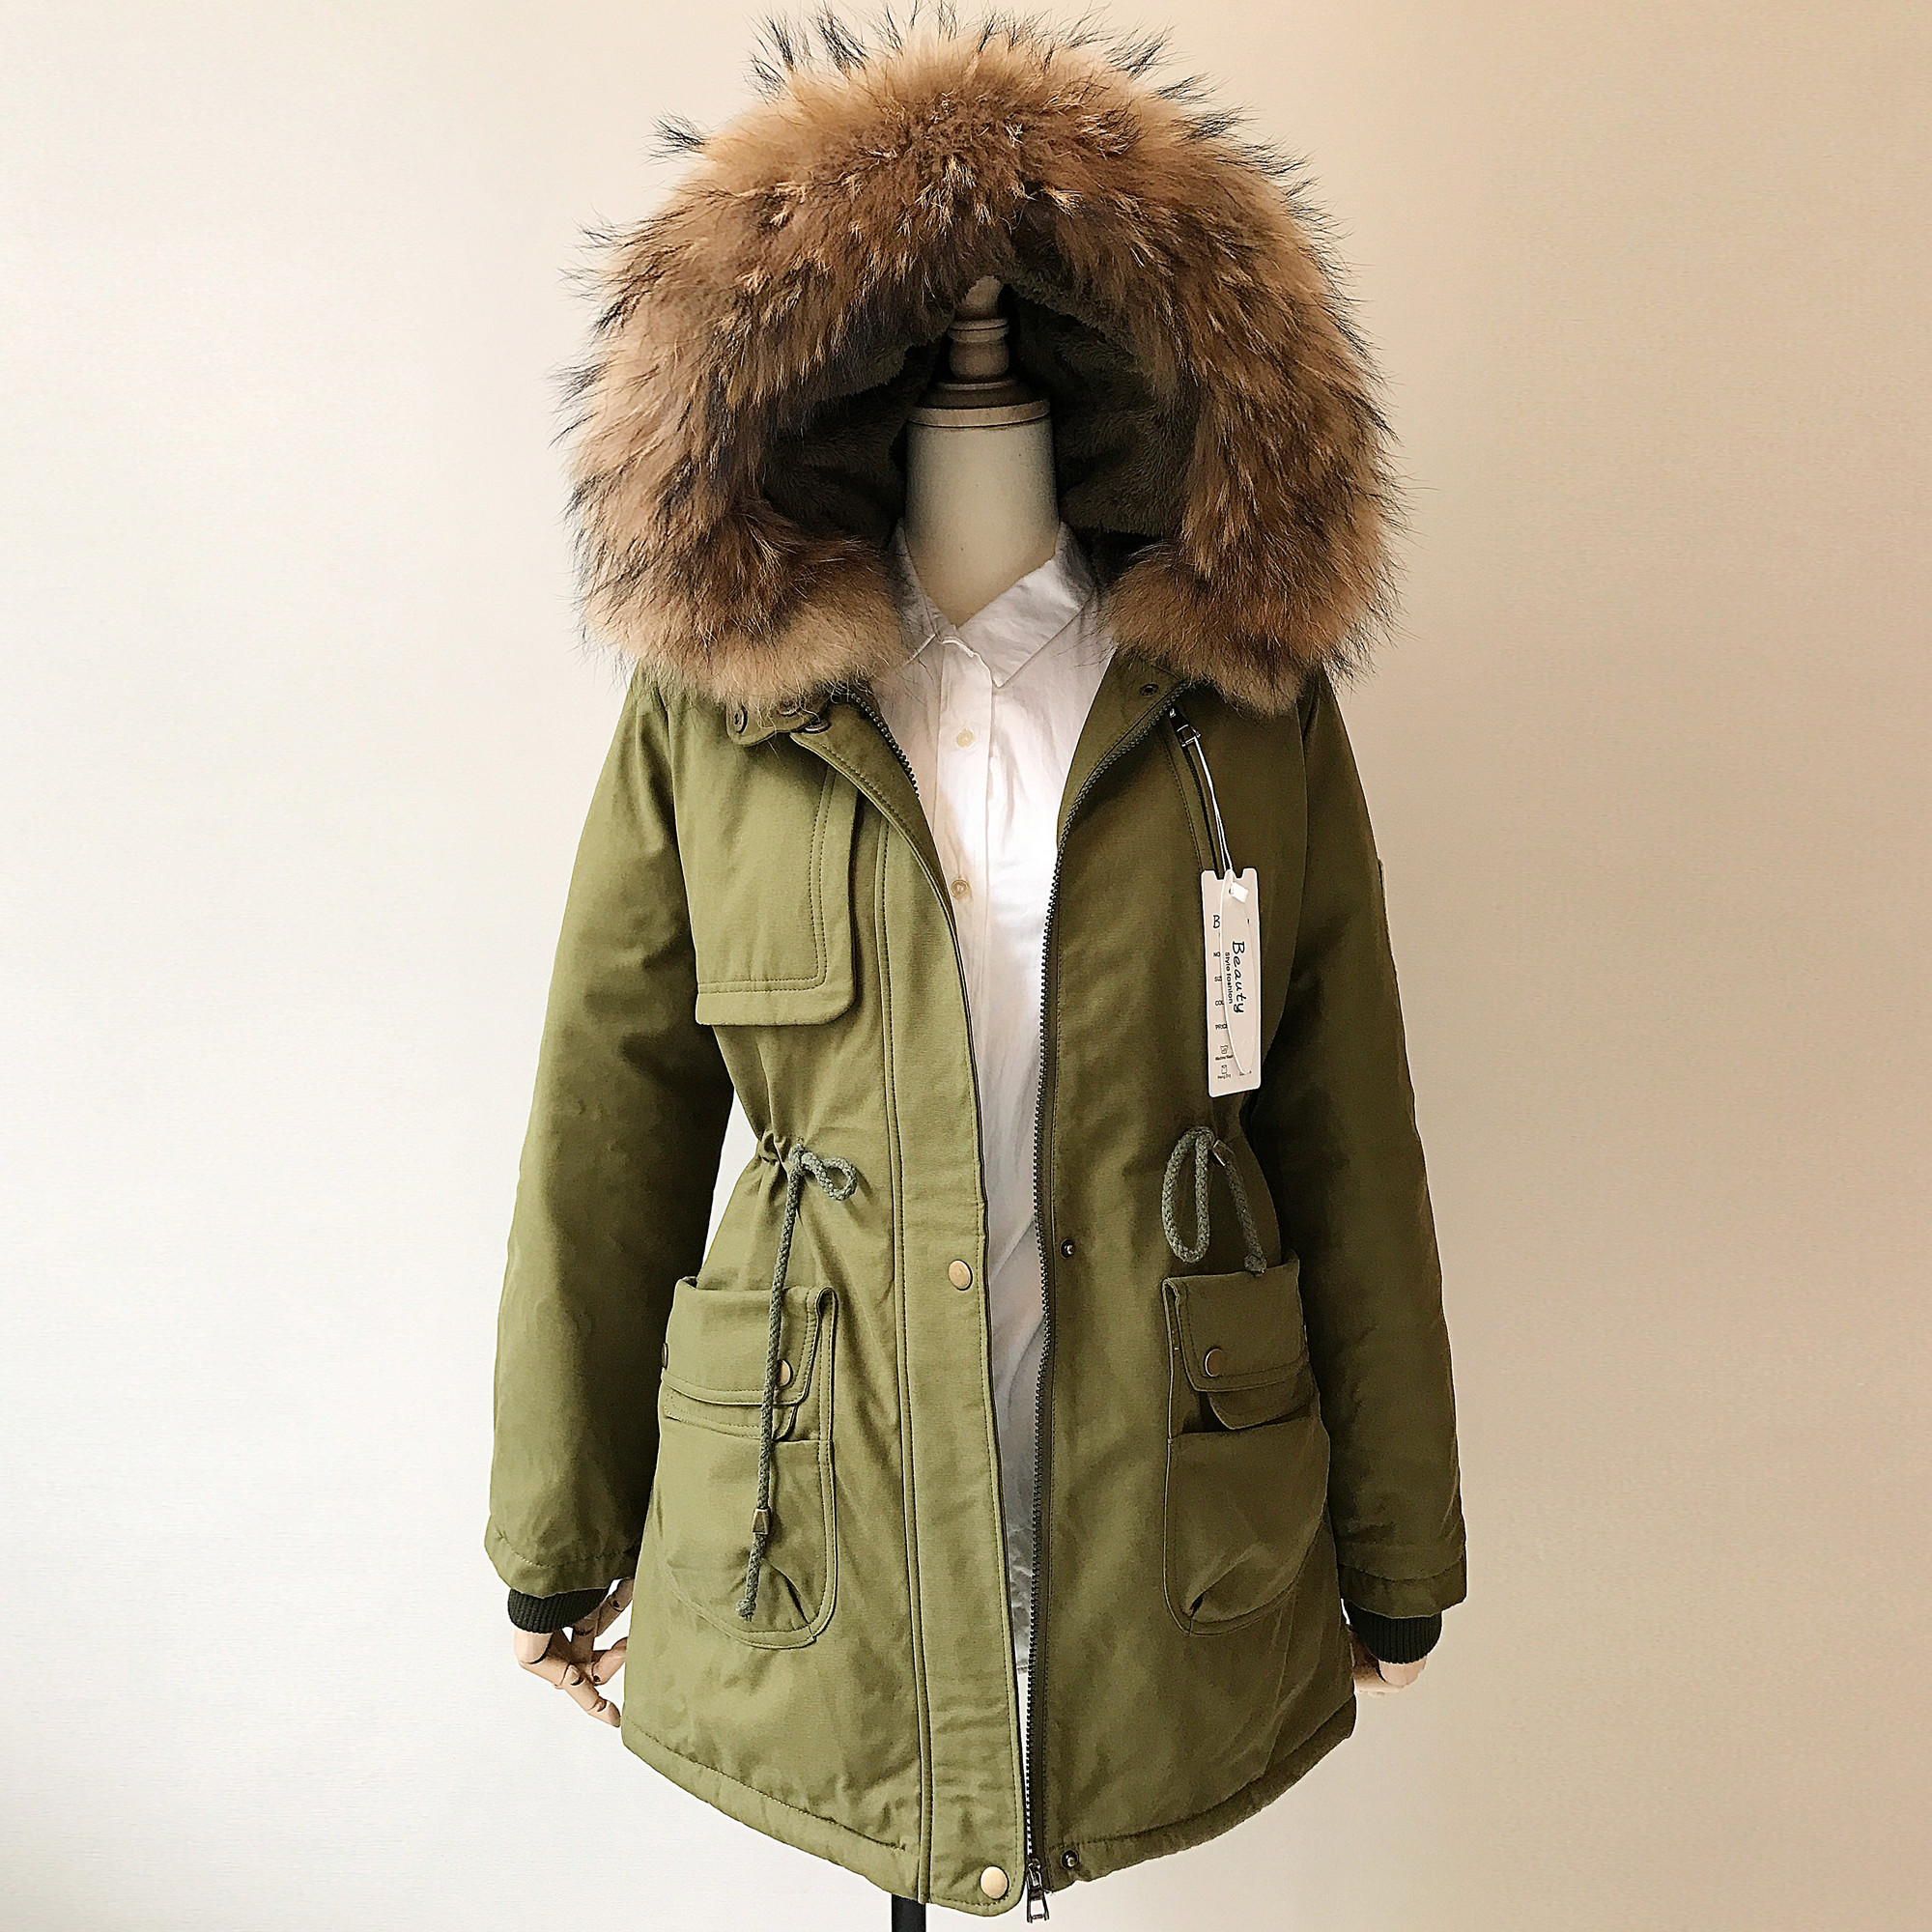 Winter Fashion Women Cotton Jackets Lovers Work Clothes Medium-long Thick Lambswool Real Raccoon Fur Collar Cotton-padded Coat 2017 winter new clothes to overcome the coat of women in the long reed rabbit hair fur fur coat fox raccoon fur collar